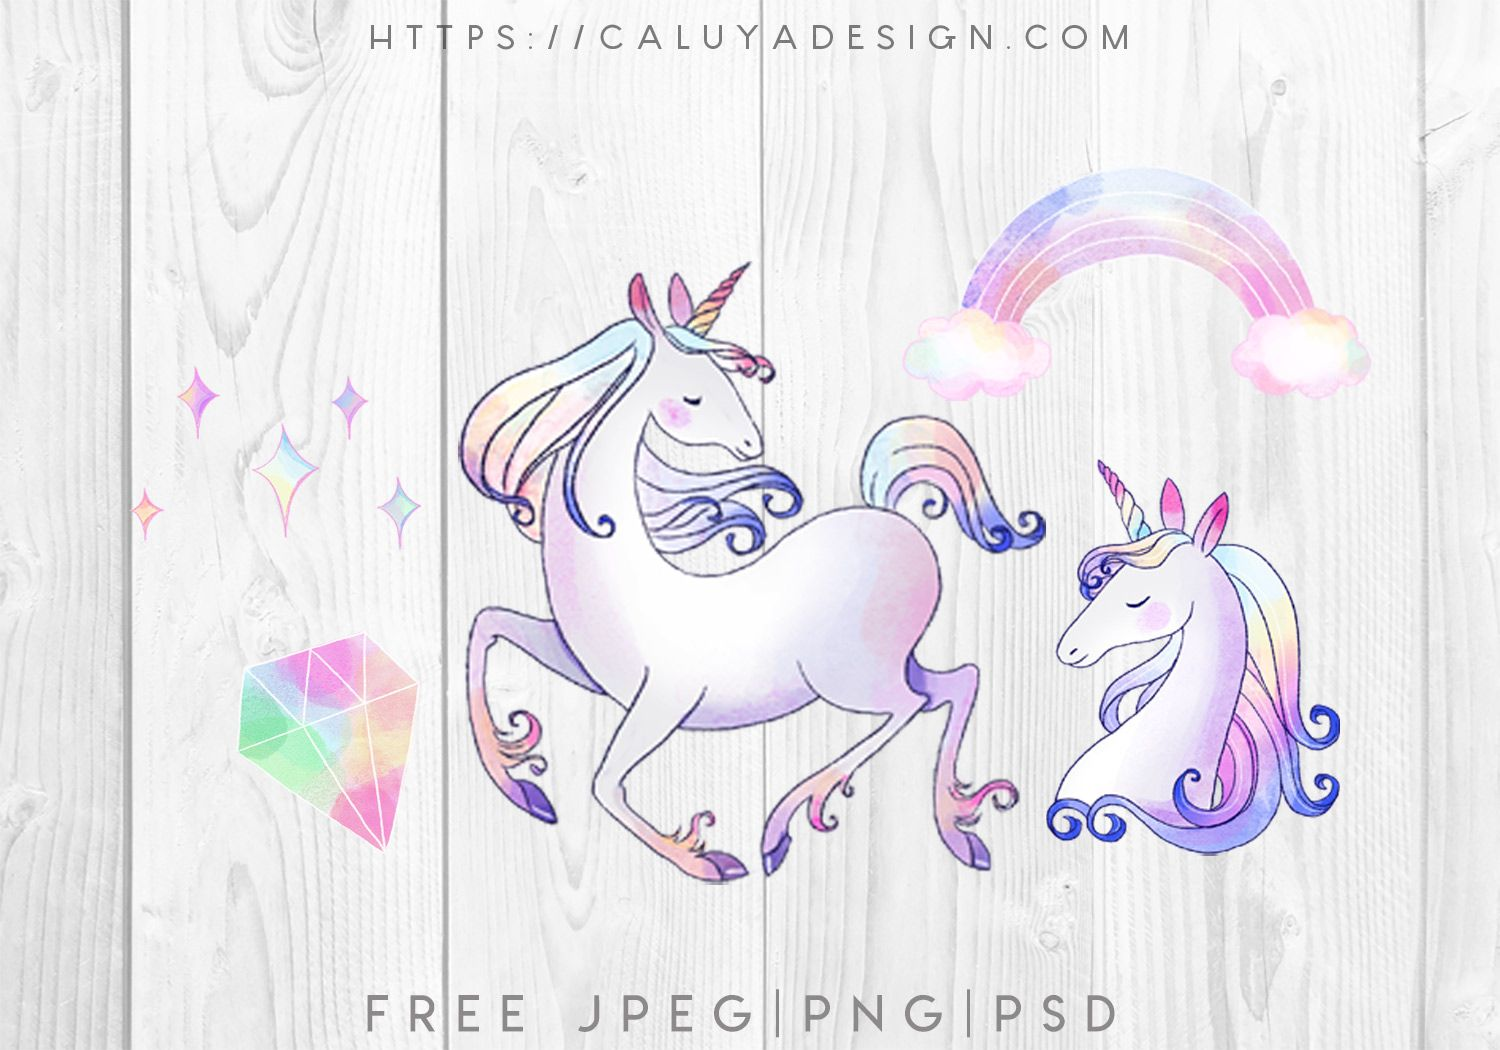 Free Watercolor Magical Unicorn Graphic with PNG, JPEG & PSD - Unicorn graphic, Diy planner stickers, Christmas svg, Magical unicorn, Christmas typography, Planner stickers - Free Watercolor Magical Unicorn Graphic with PNG, JPEG & PSD format by Caluya Design  Perfect for your DIY projects, printable art, graphic design, wall decor, DIY planner stickers and more! Free for personal use!